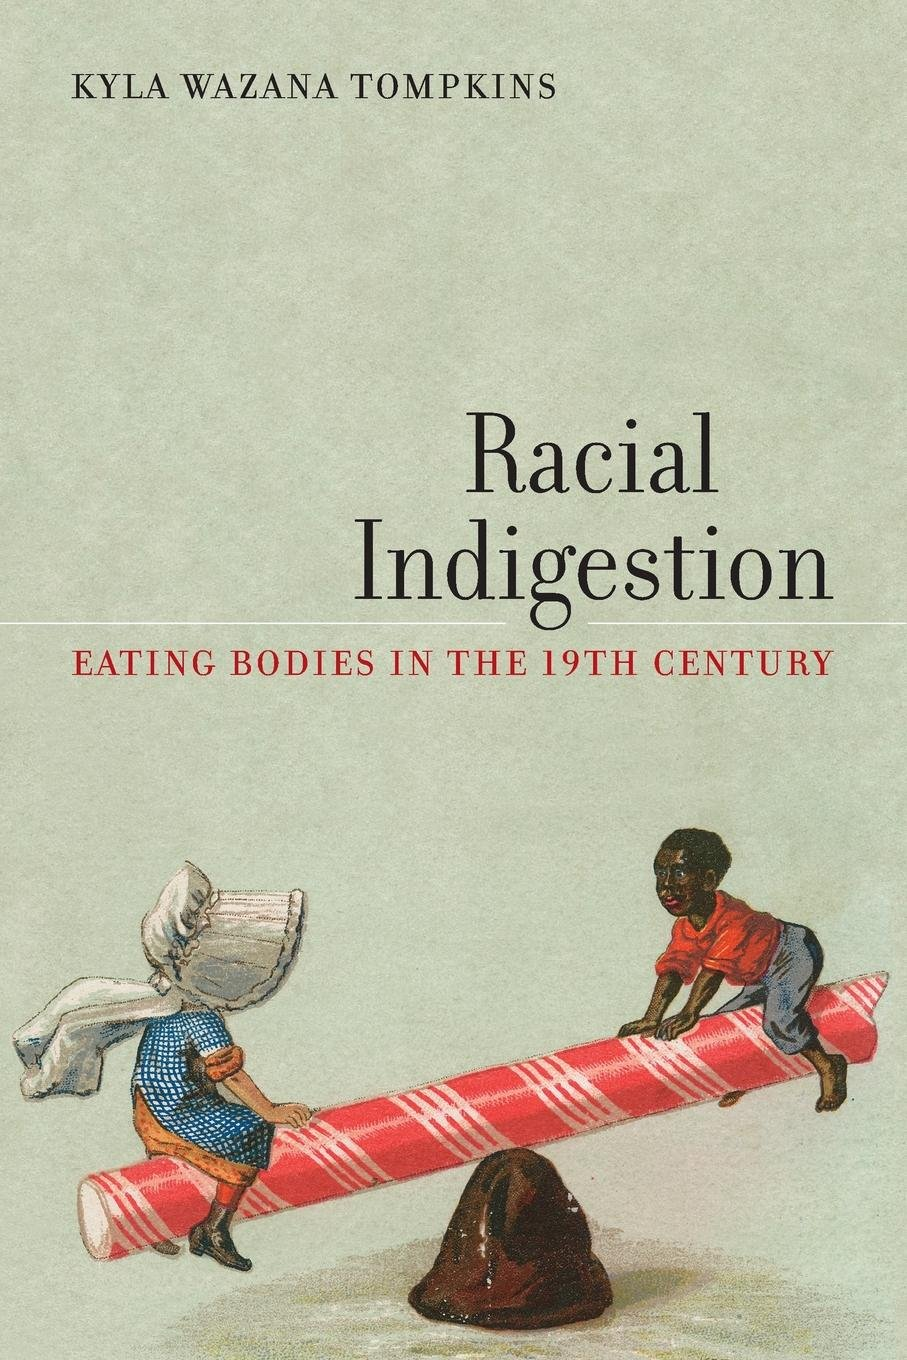 Racial Indigestion: Eating Bodies in the 19th Century (America and the Long 19th Century) pdf epub